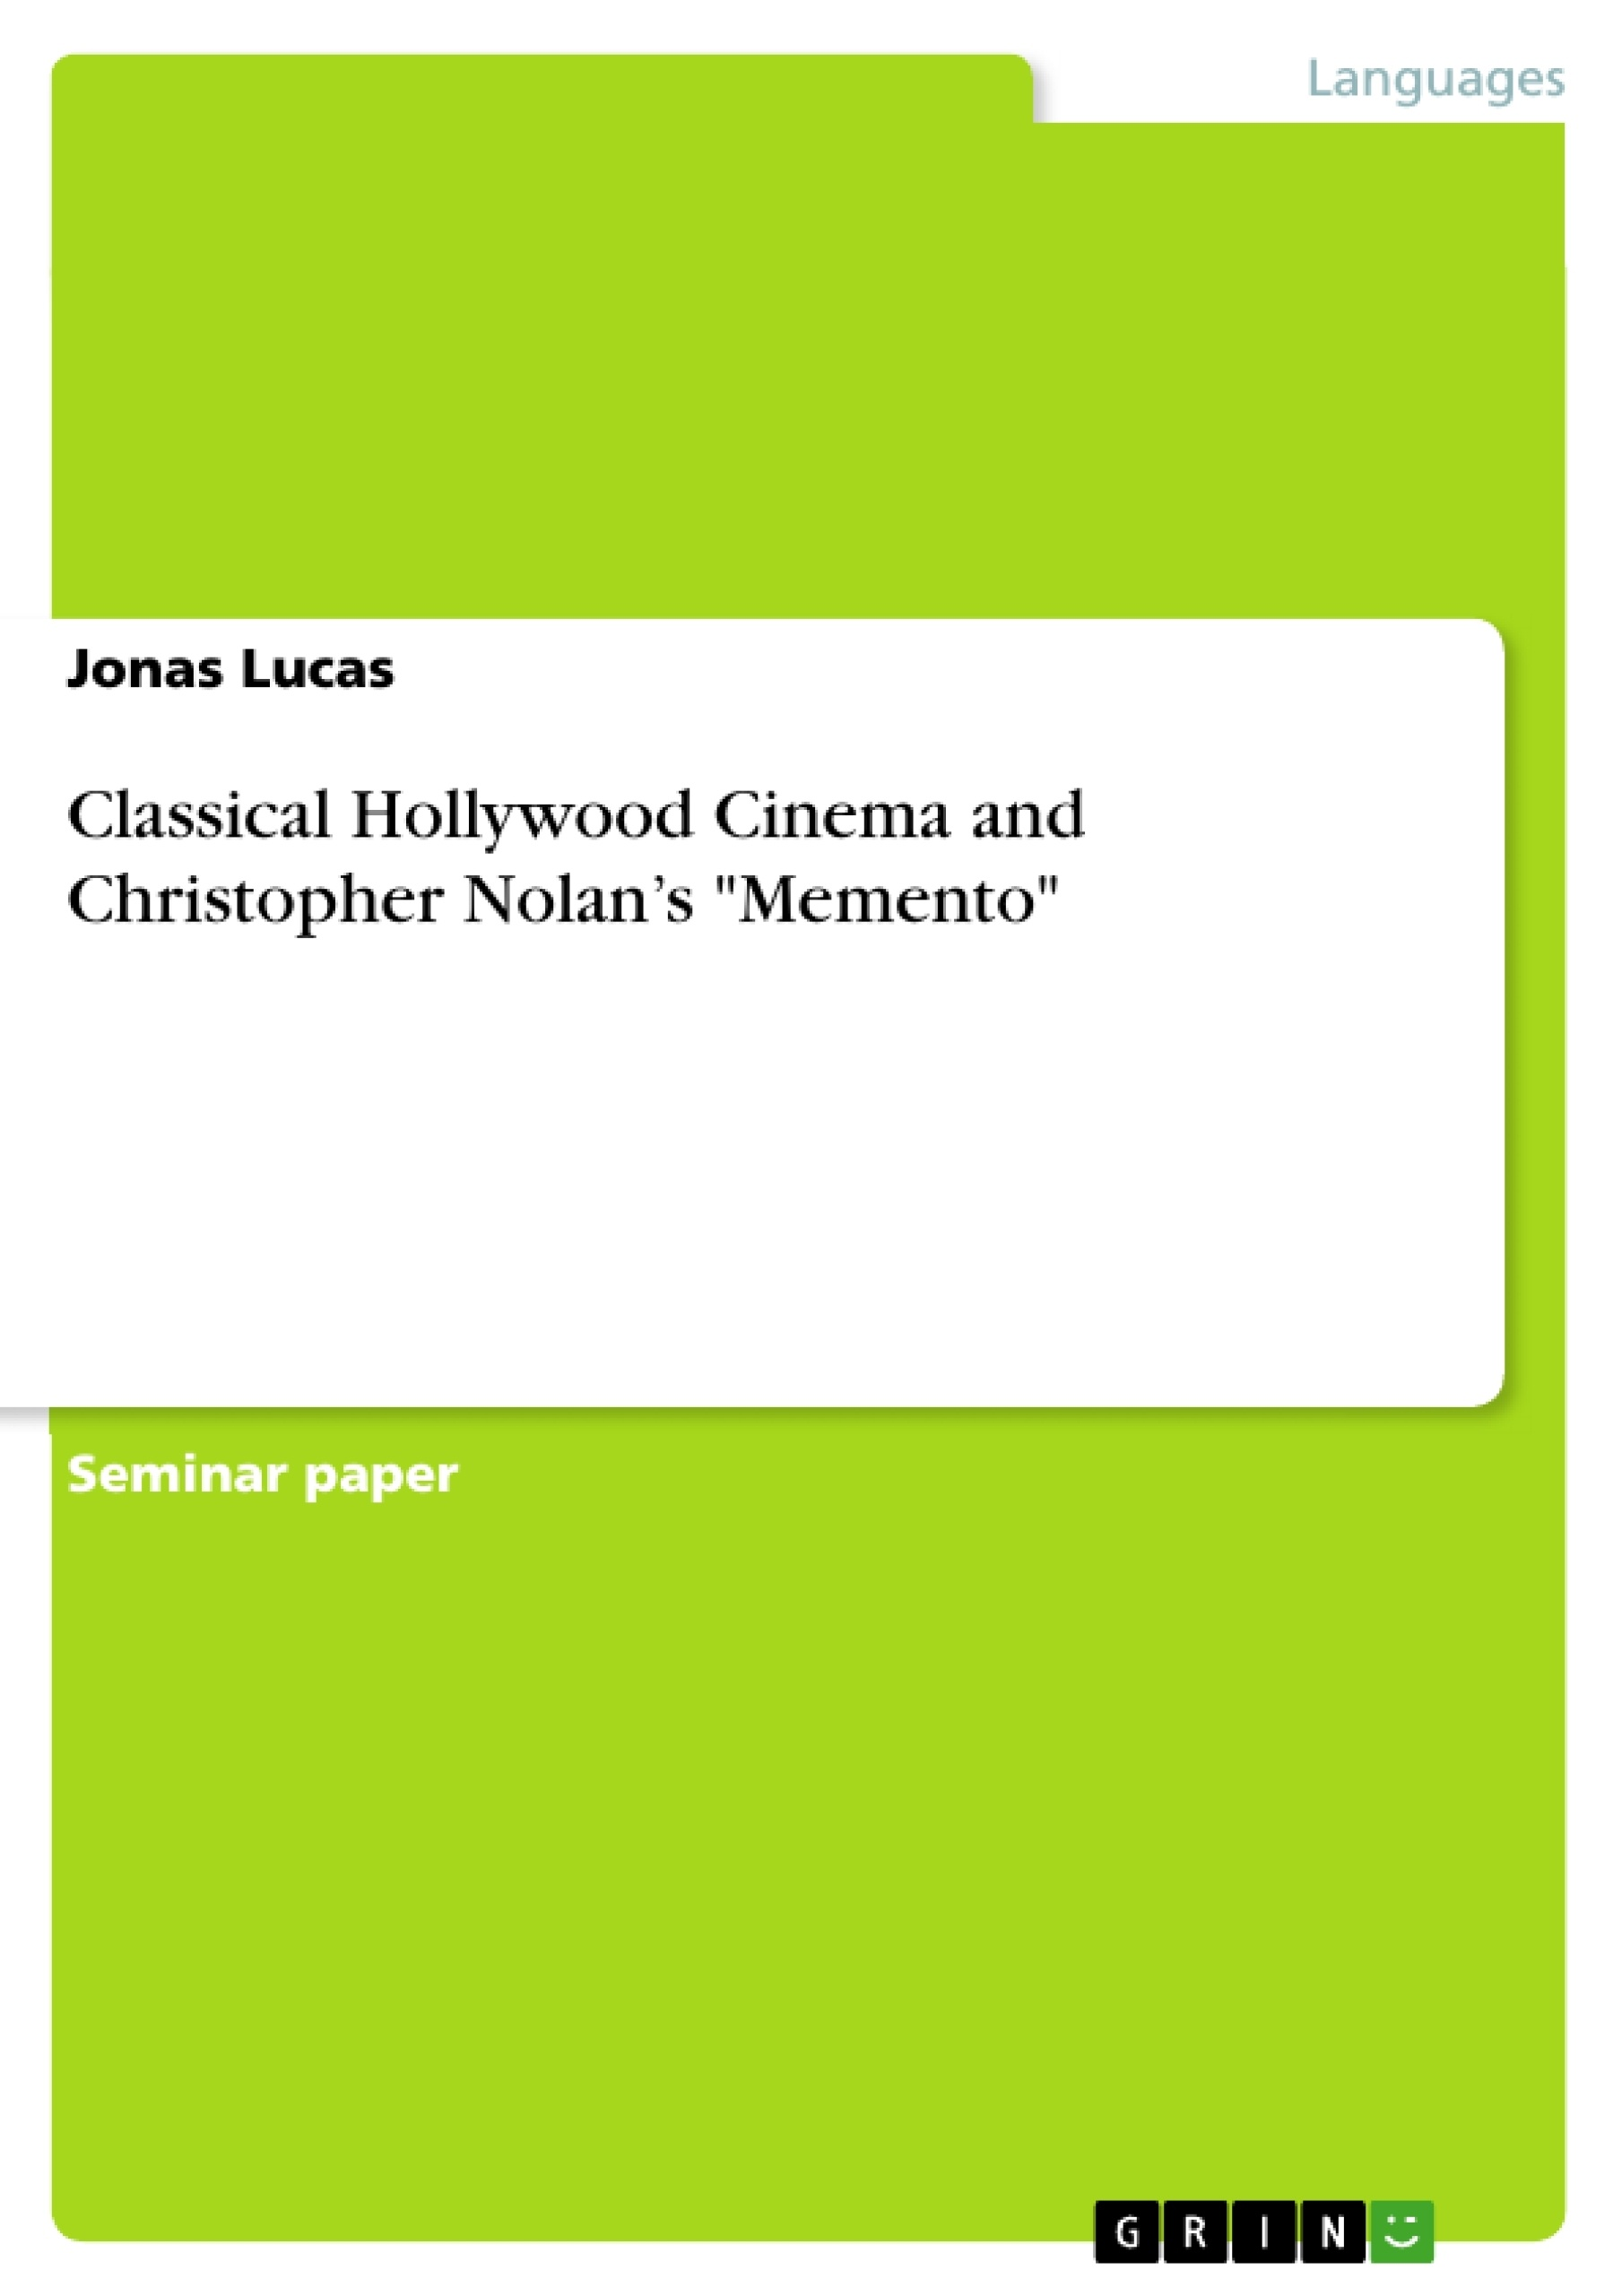 classical hollywood cinema and christopher nolan s memento classical hollywood cinema and christopher nolan s memento publish your master s thesis bachelor s thesis essay or term paper